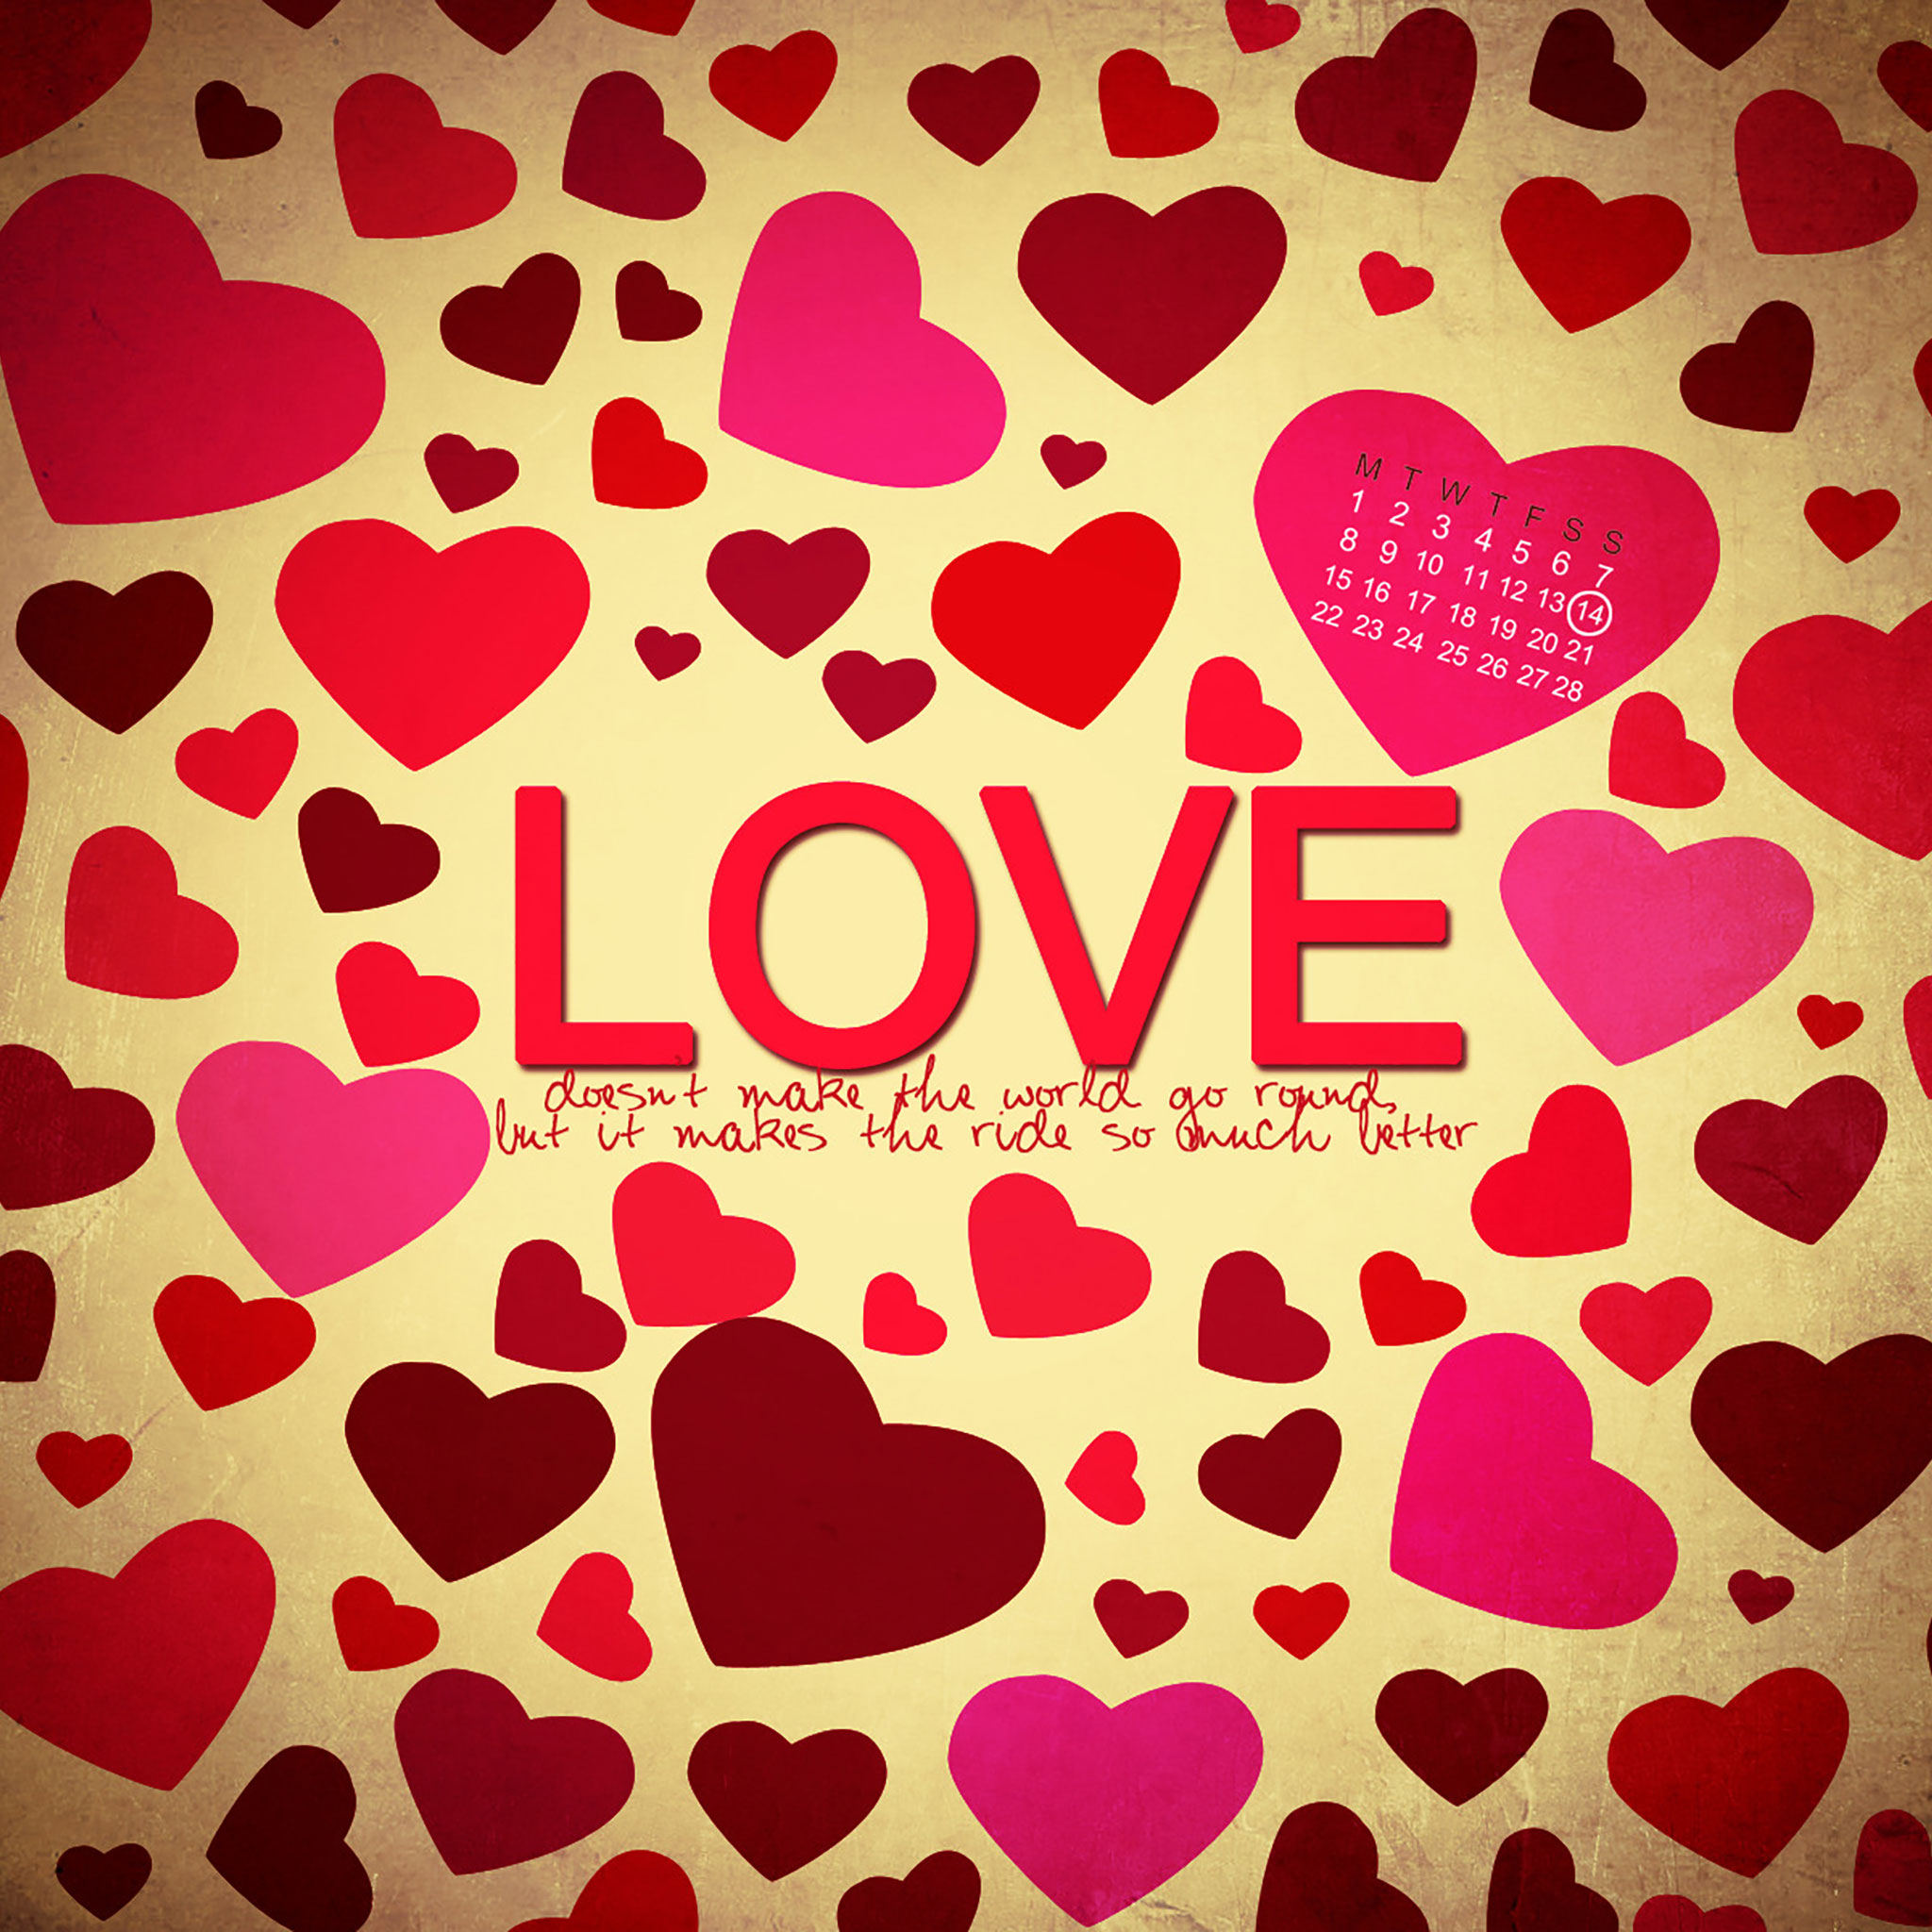 Amazing Wallpaper Love Ipad - valentines-day-ipad-wallpaper-1  Collection_751023.jpg